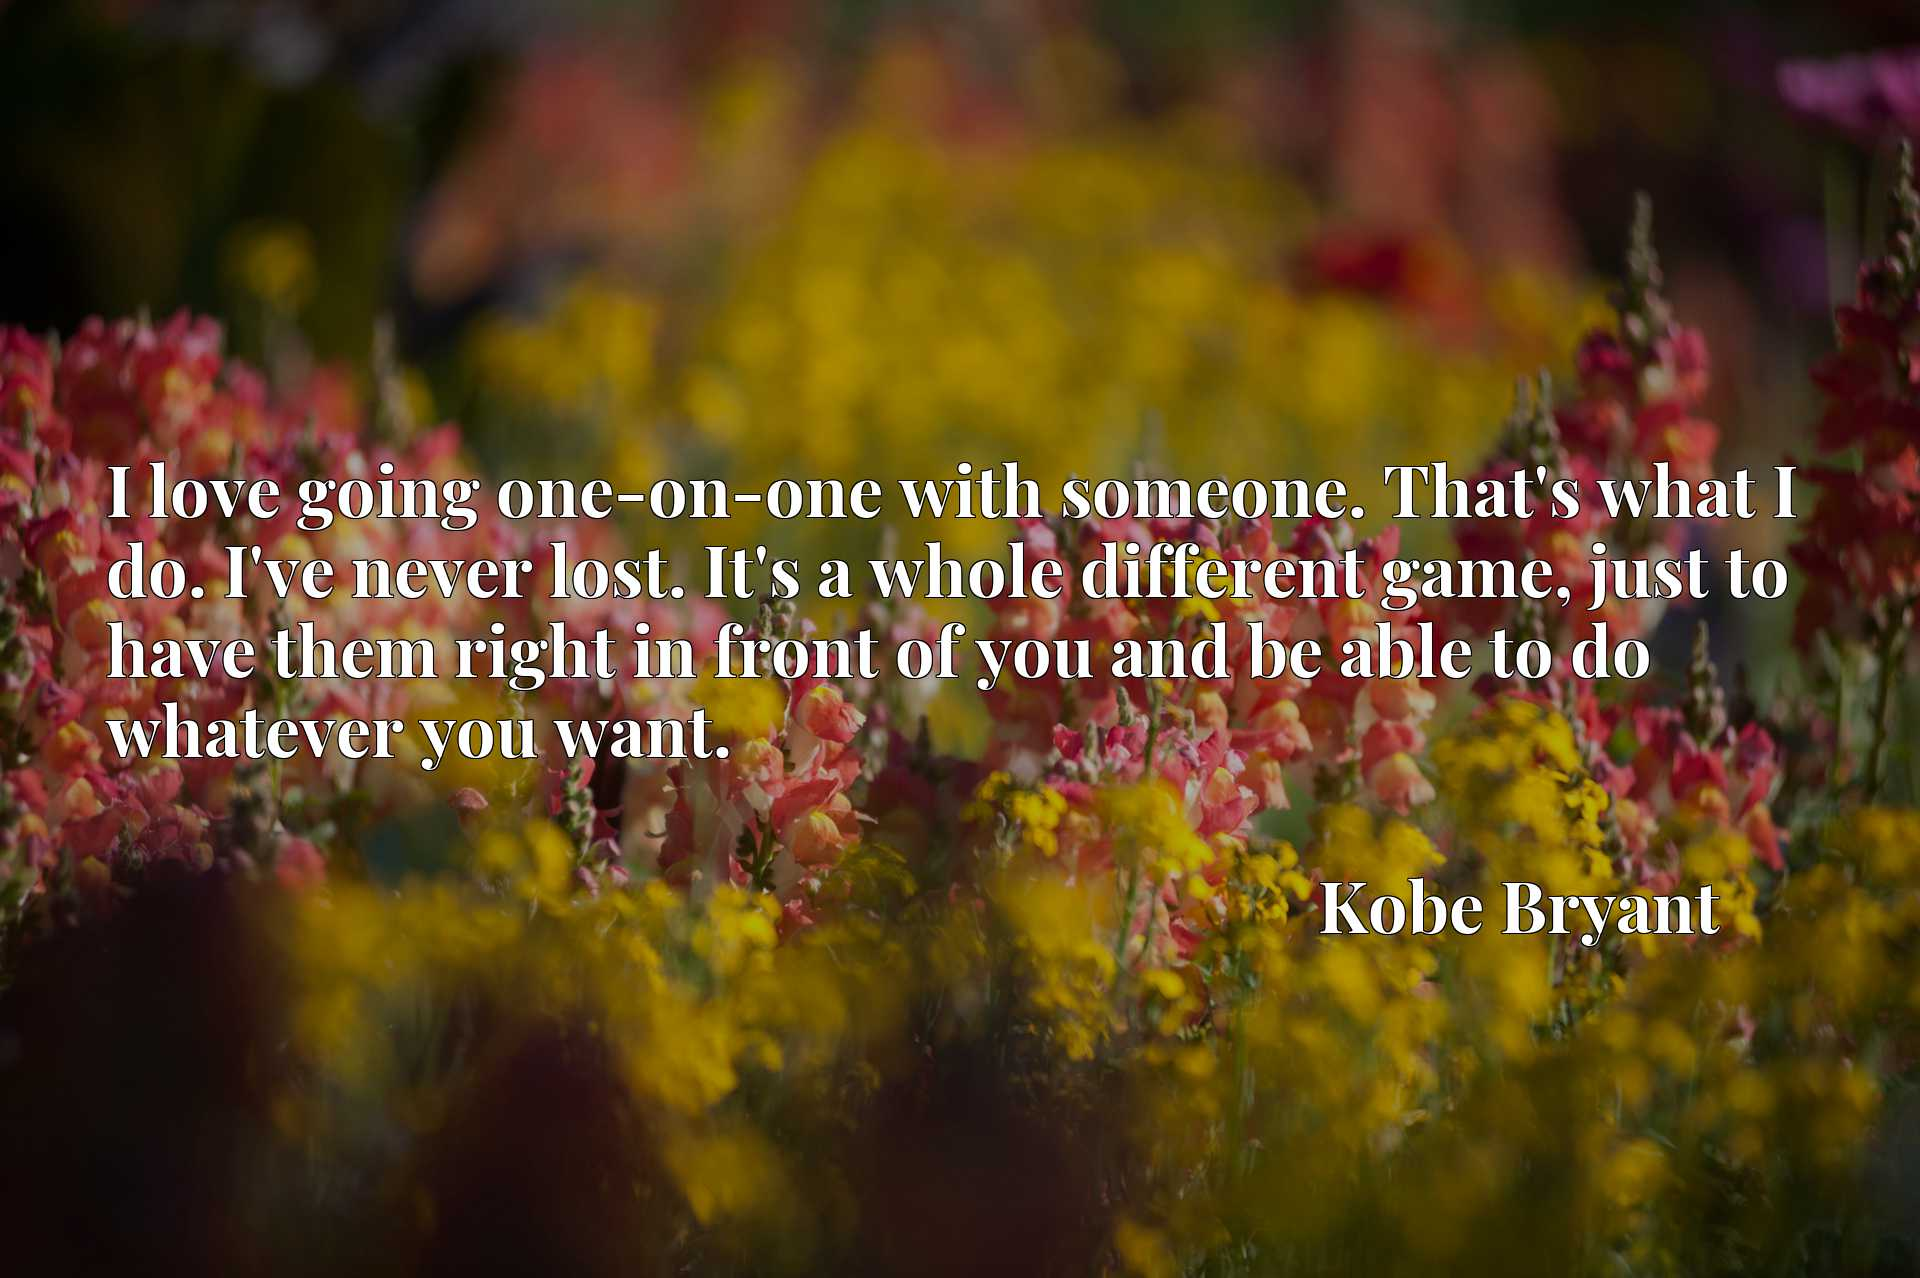 Quote Picture :I love going one-on-one with someone. That's what I do. I've never lost. It's a whole different game, just to have them right in front of you and be able to do whatever you want.